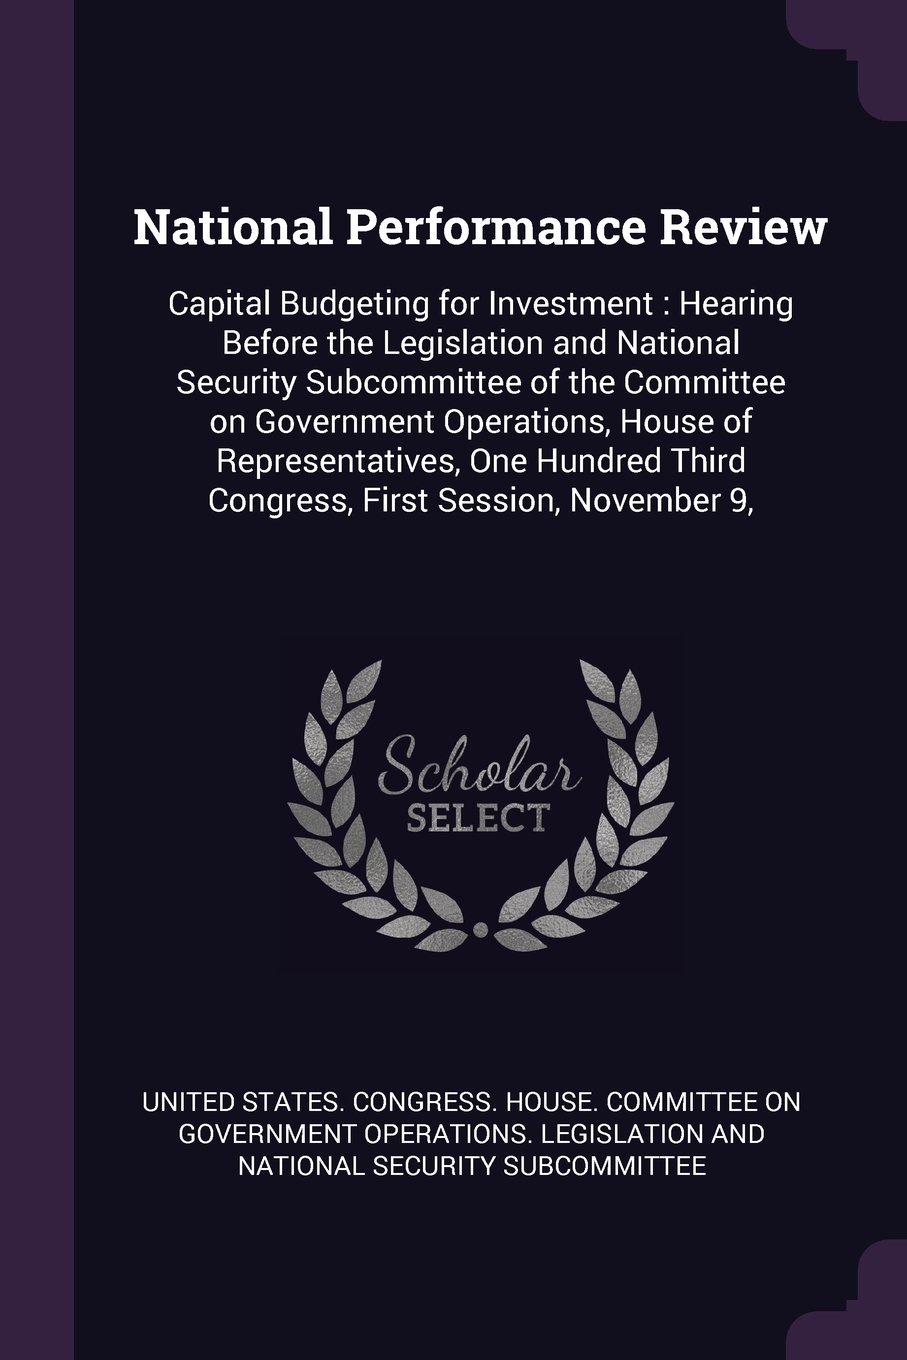 Download National Performance Review: Capital Budgeting for Investment: Hearing Before the Legislation and National Security Subcommittee of the Committee on Third Congress, First Session, November 9, ebook